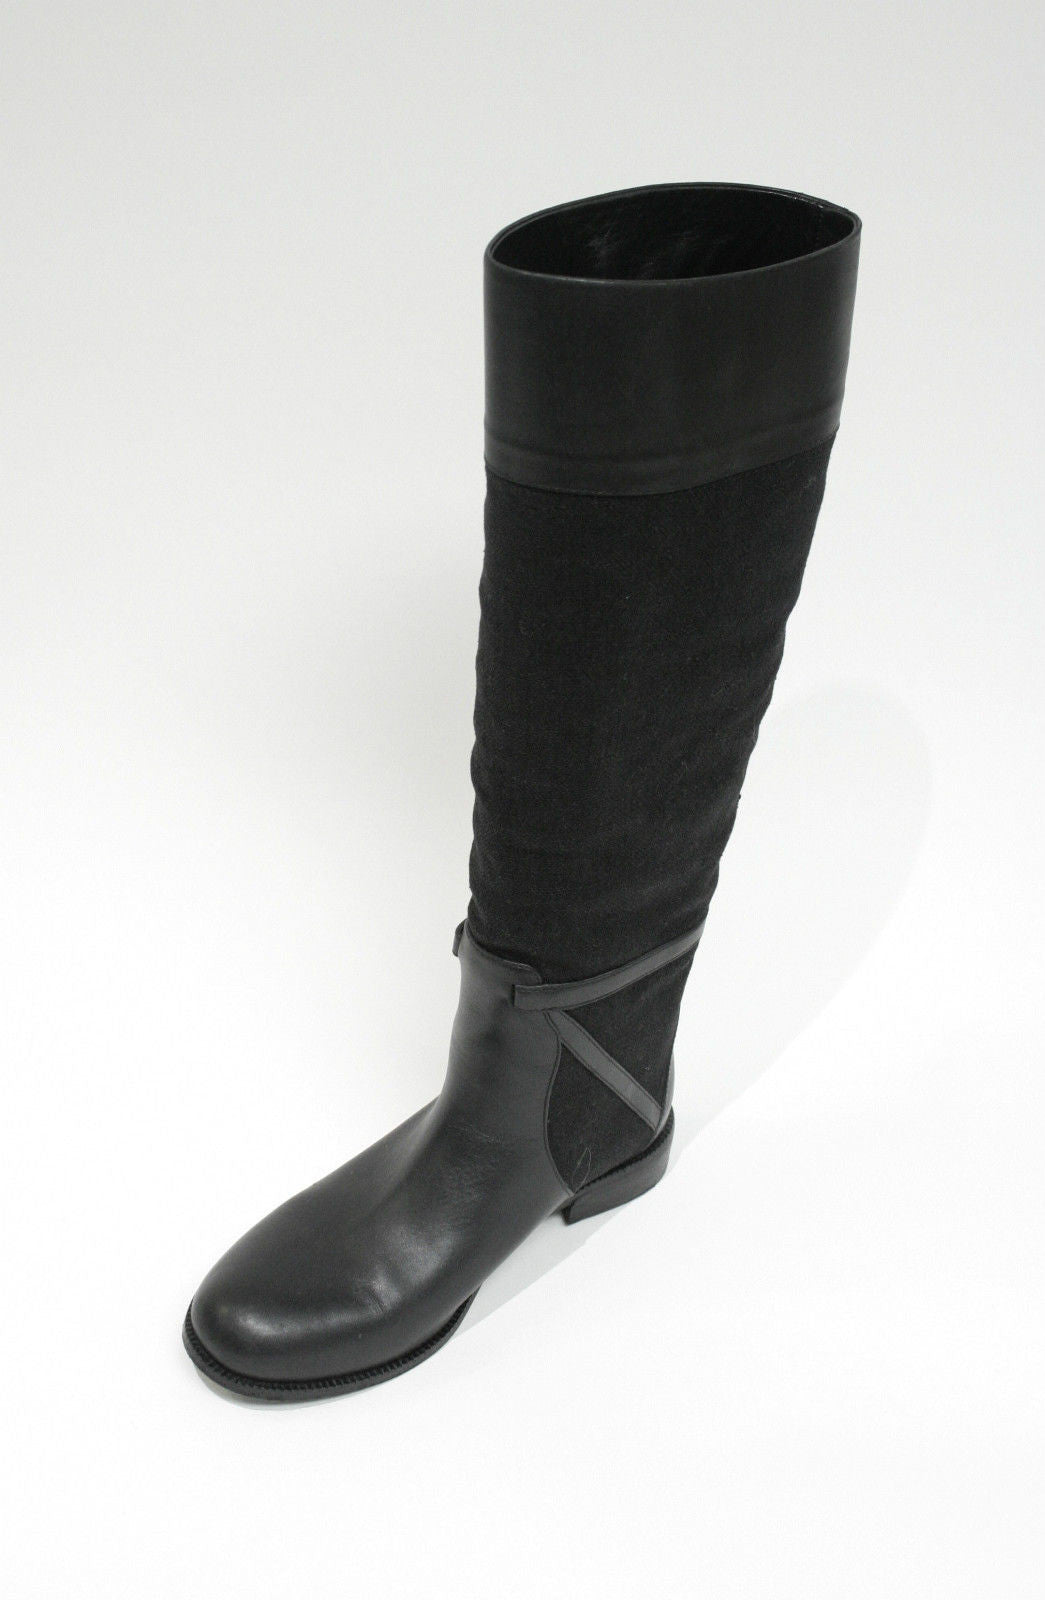 bisbiz.com BOTTEGA VENETA  Black Leather & Linen Tall Knee-High Flat Riding Boots  Size: 36 / 6 - Bis Luxury Resale